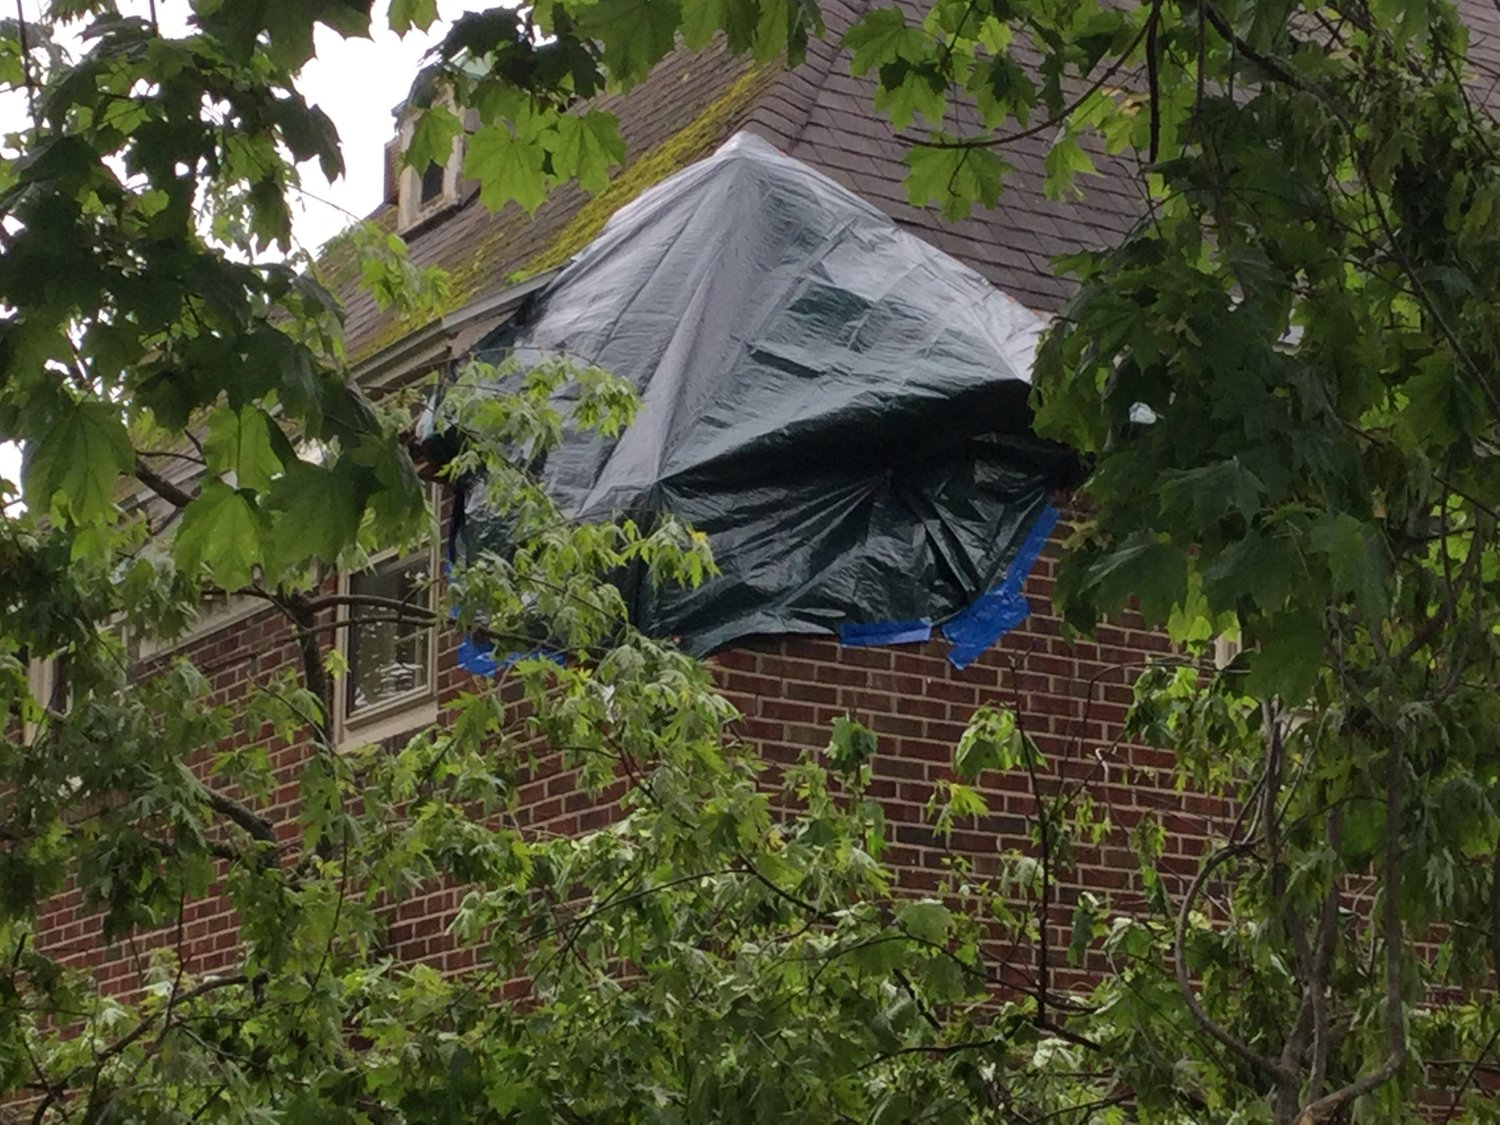 CORNER GONE — A tarp covers up the hole at 302 Maple St. in Rome this morning. Resident Bill Brain said a tree in his backyard fell and knocked out the whole corner.(Sentinel photos by Sean I. Mills)